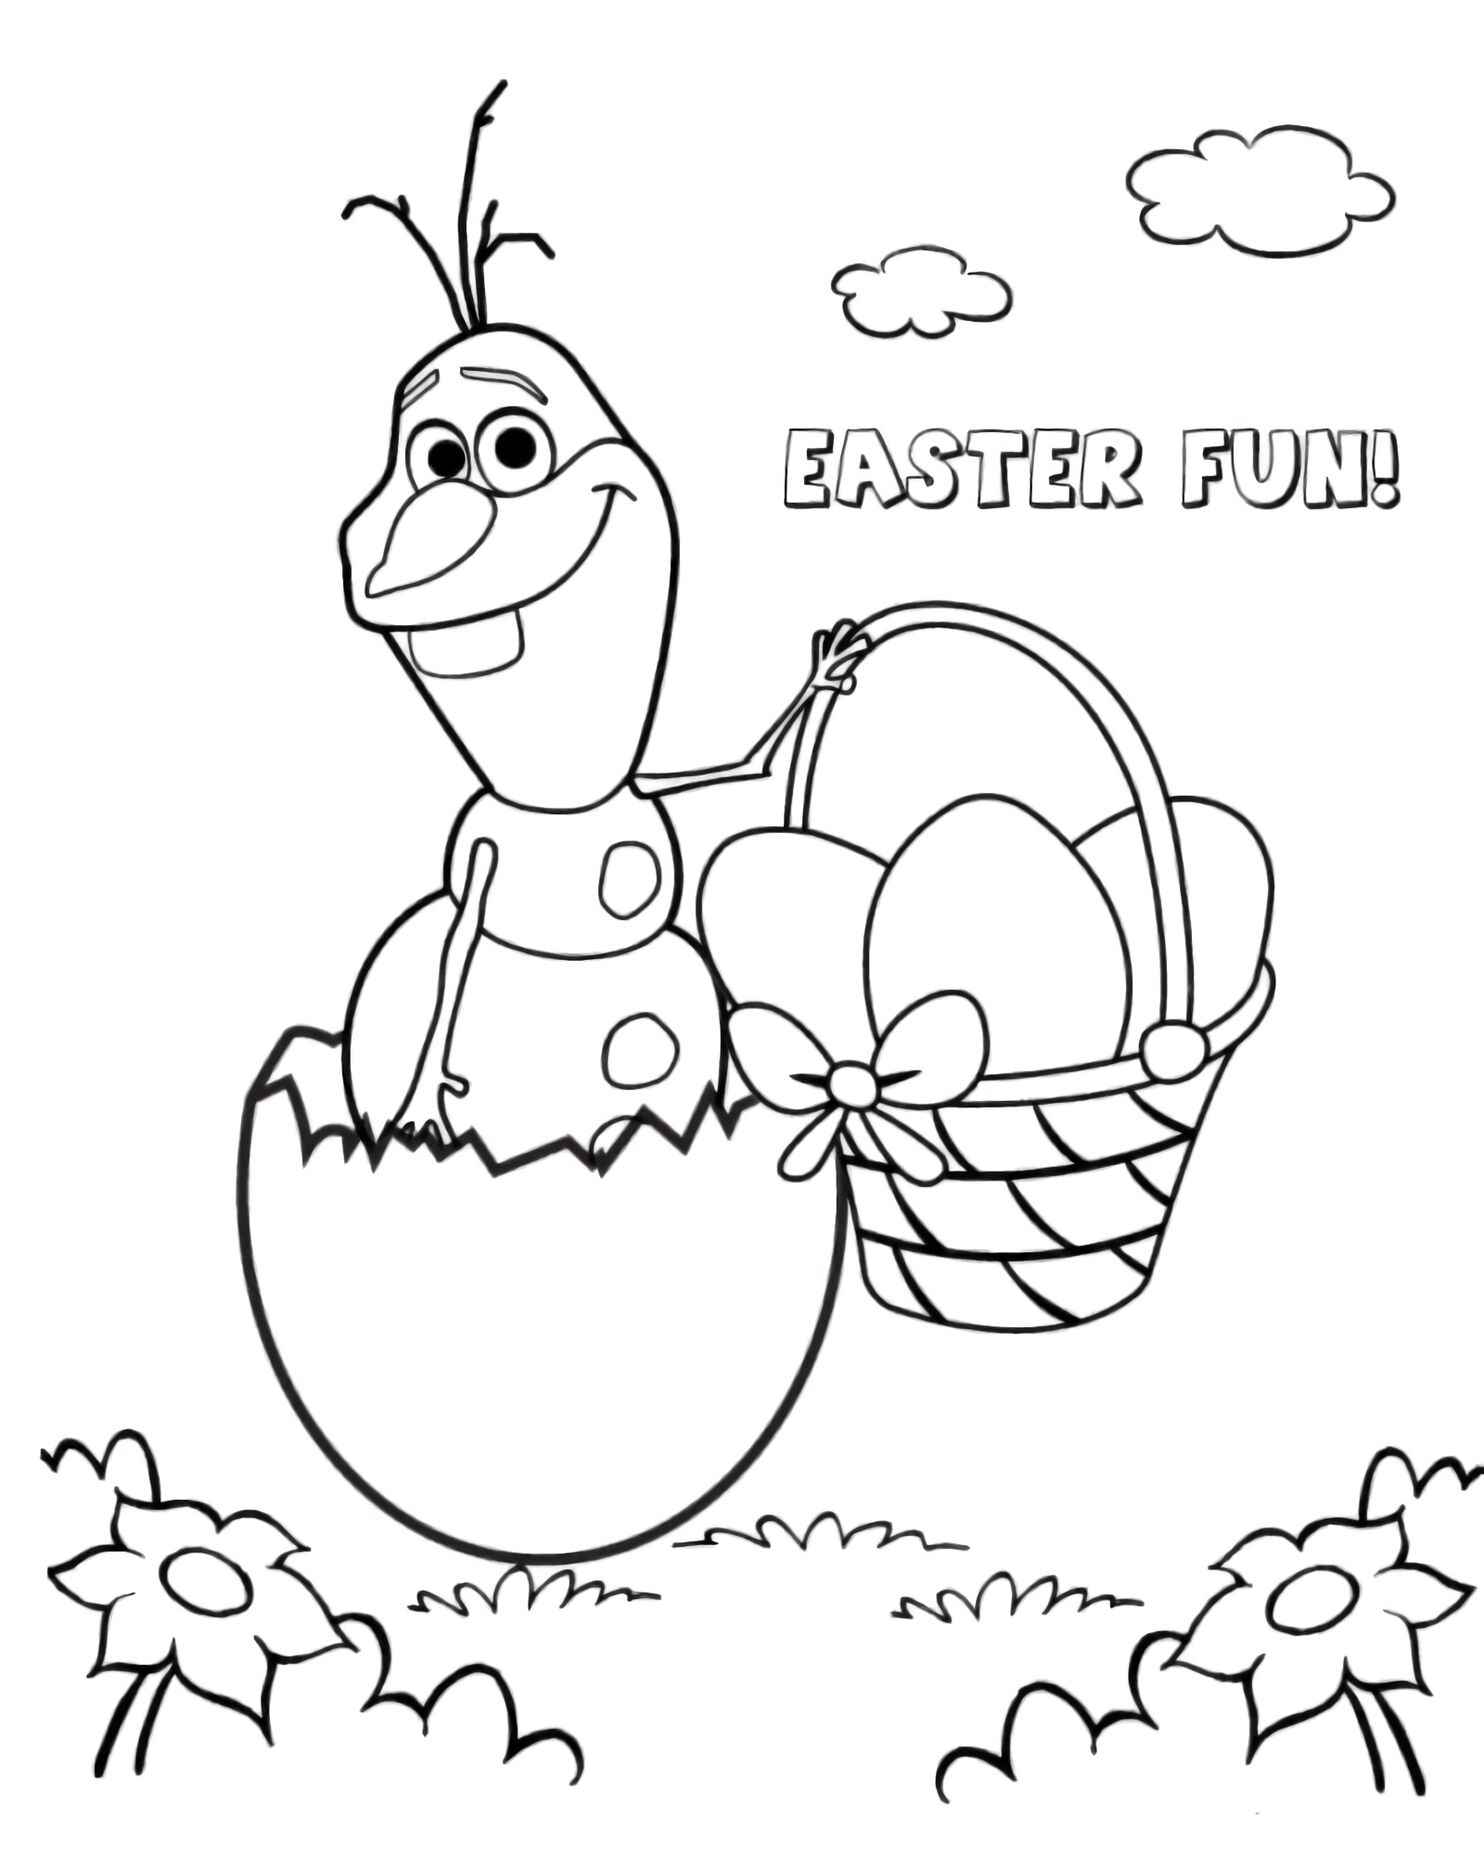 Olaf From Frozen With Easter Eggs Coloring Page